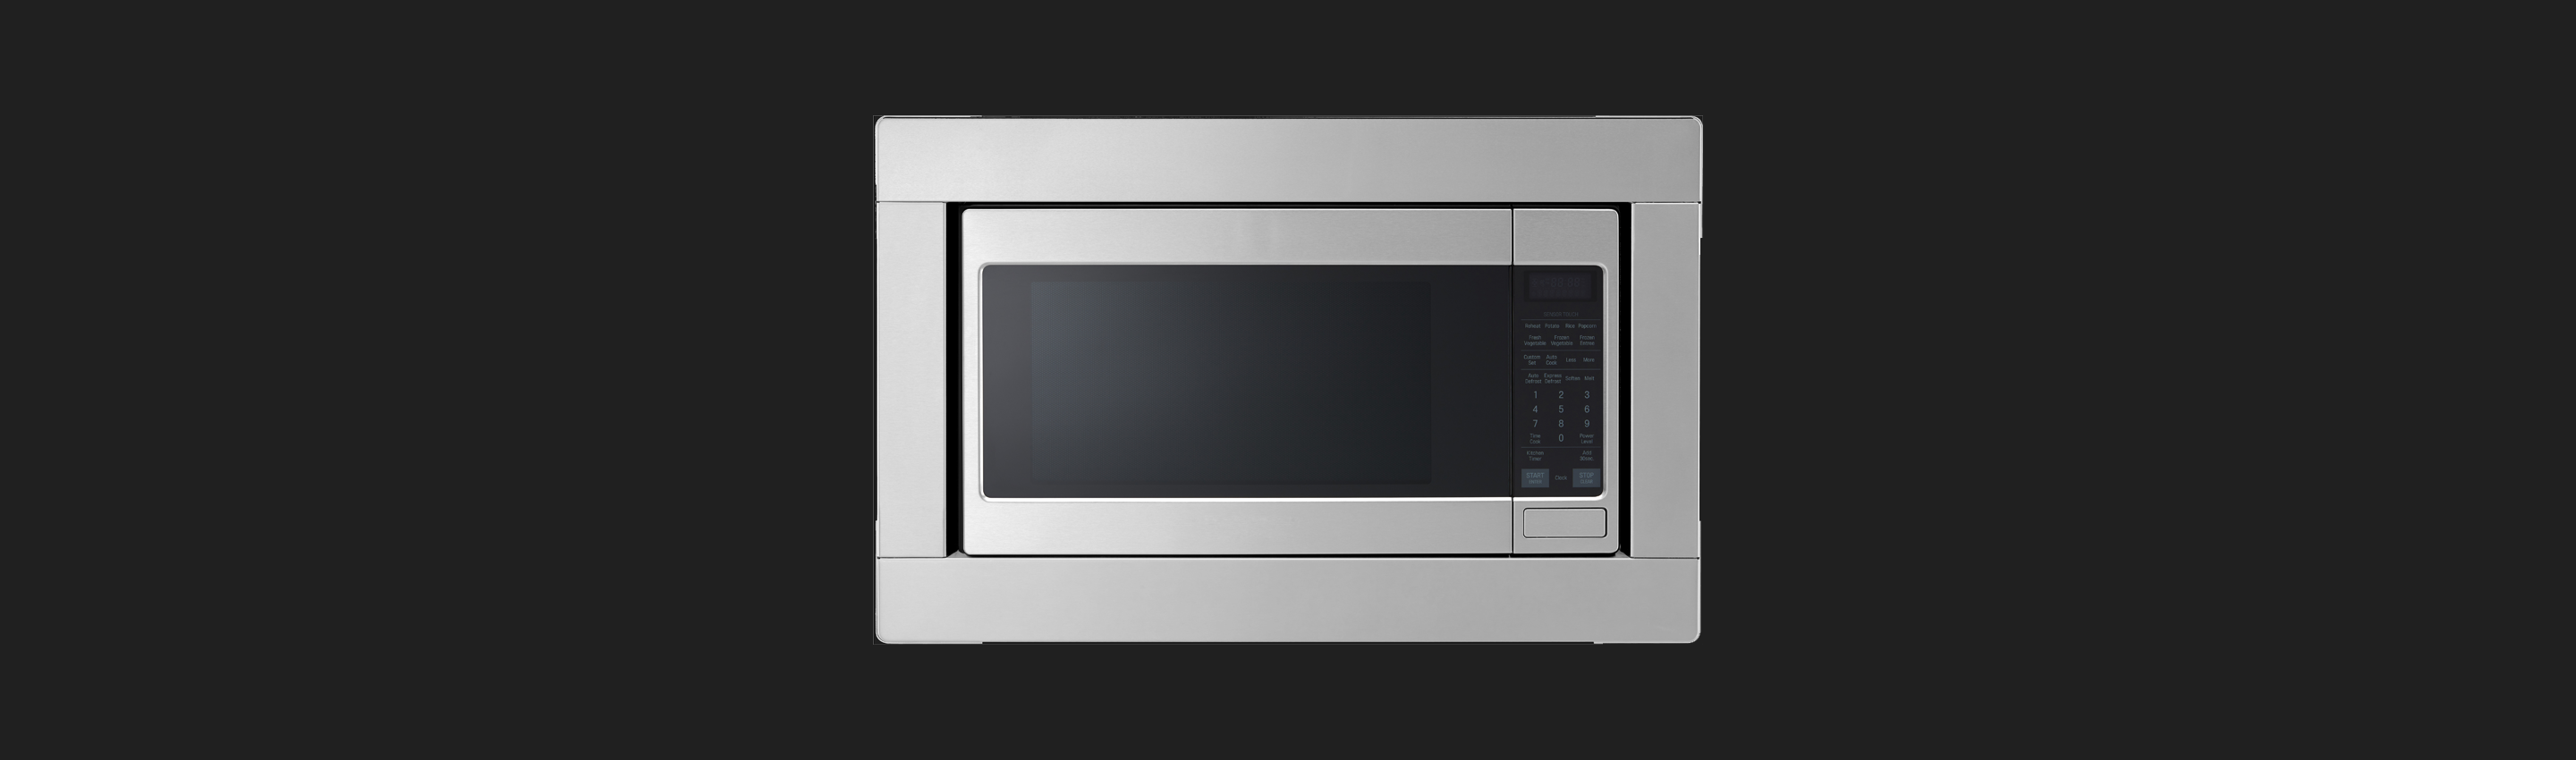 Countertop Microwave with Trim Kit from Signature Kitchen Suite